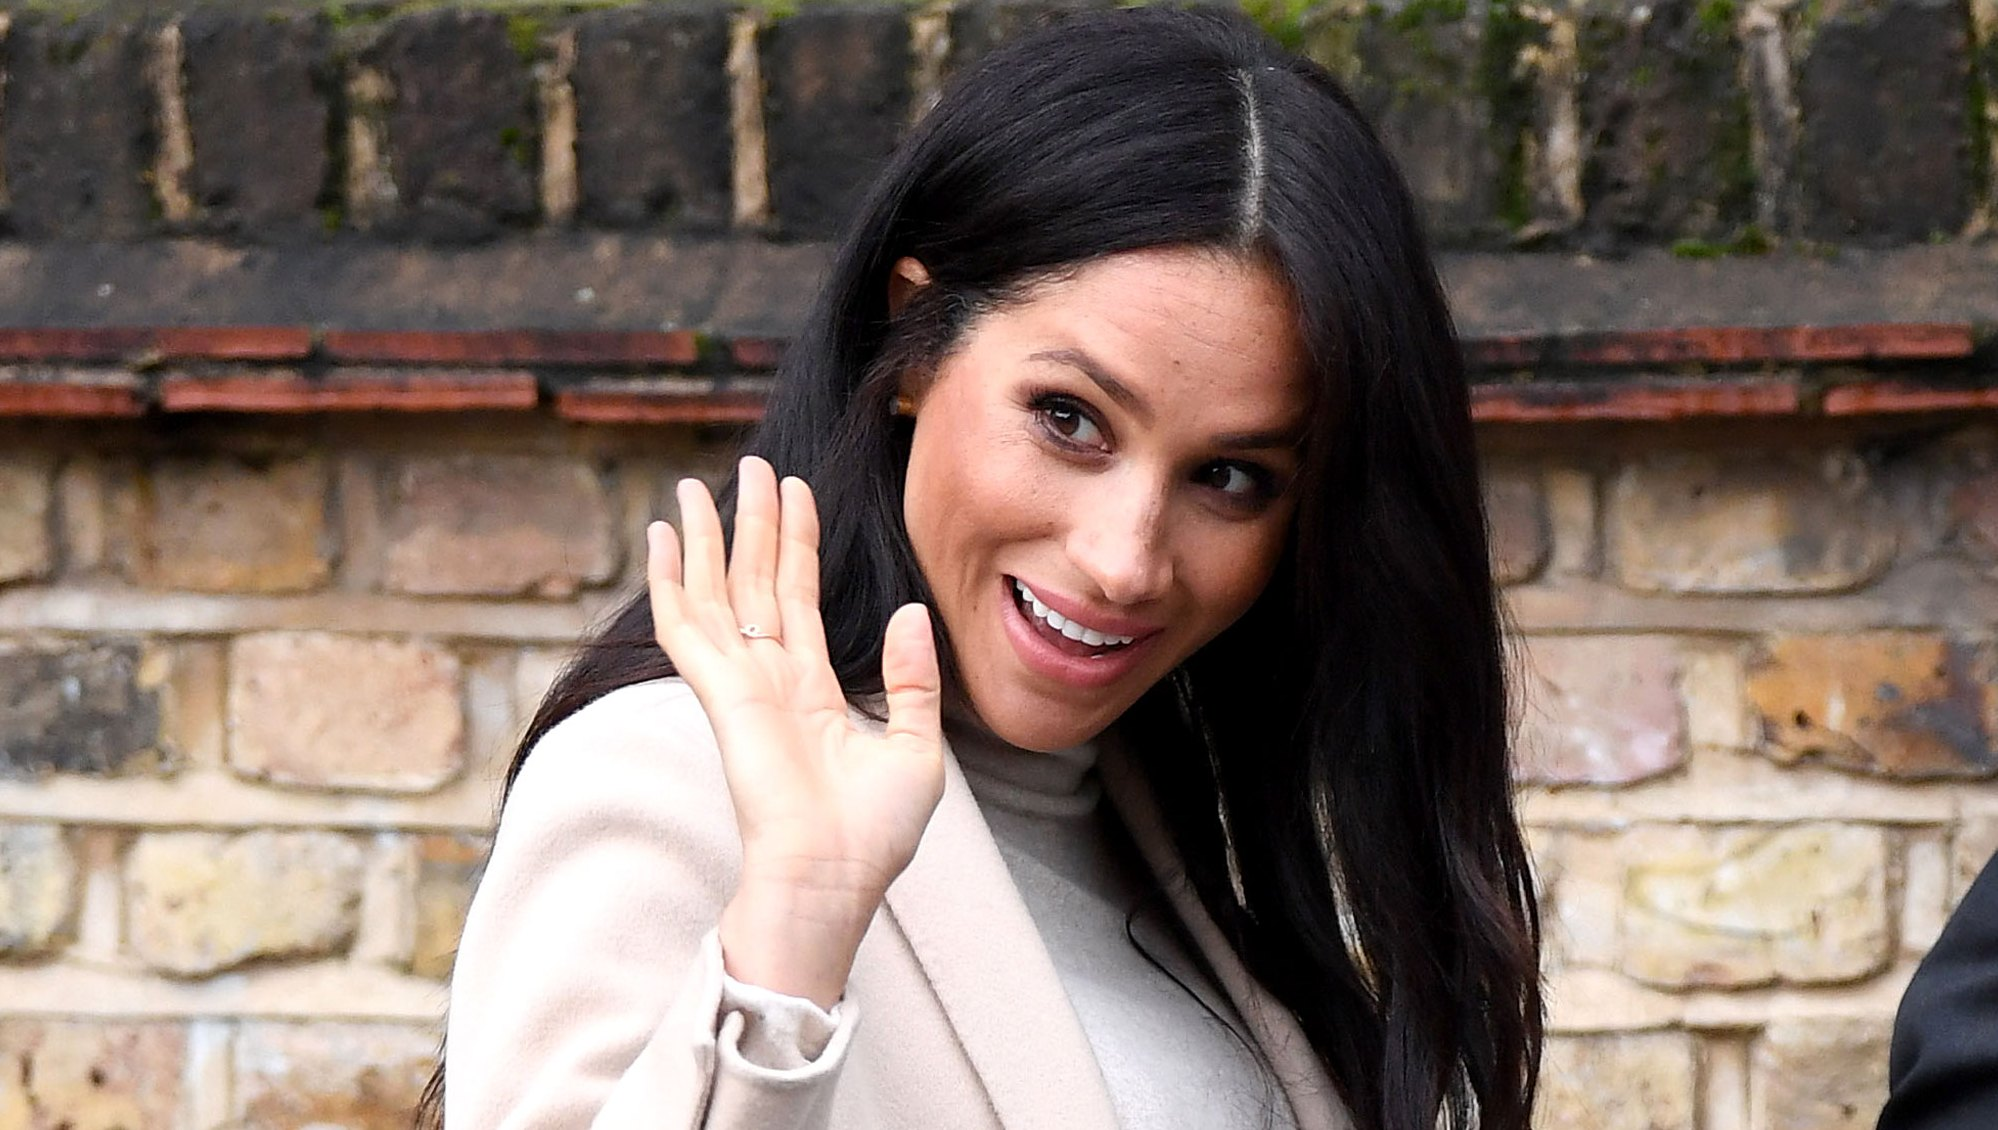 Pregnant Duchess Meghan Cracks Up After Woman Calls Her a 'Fat Lady' at London Animal Charity